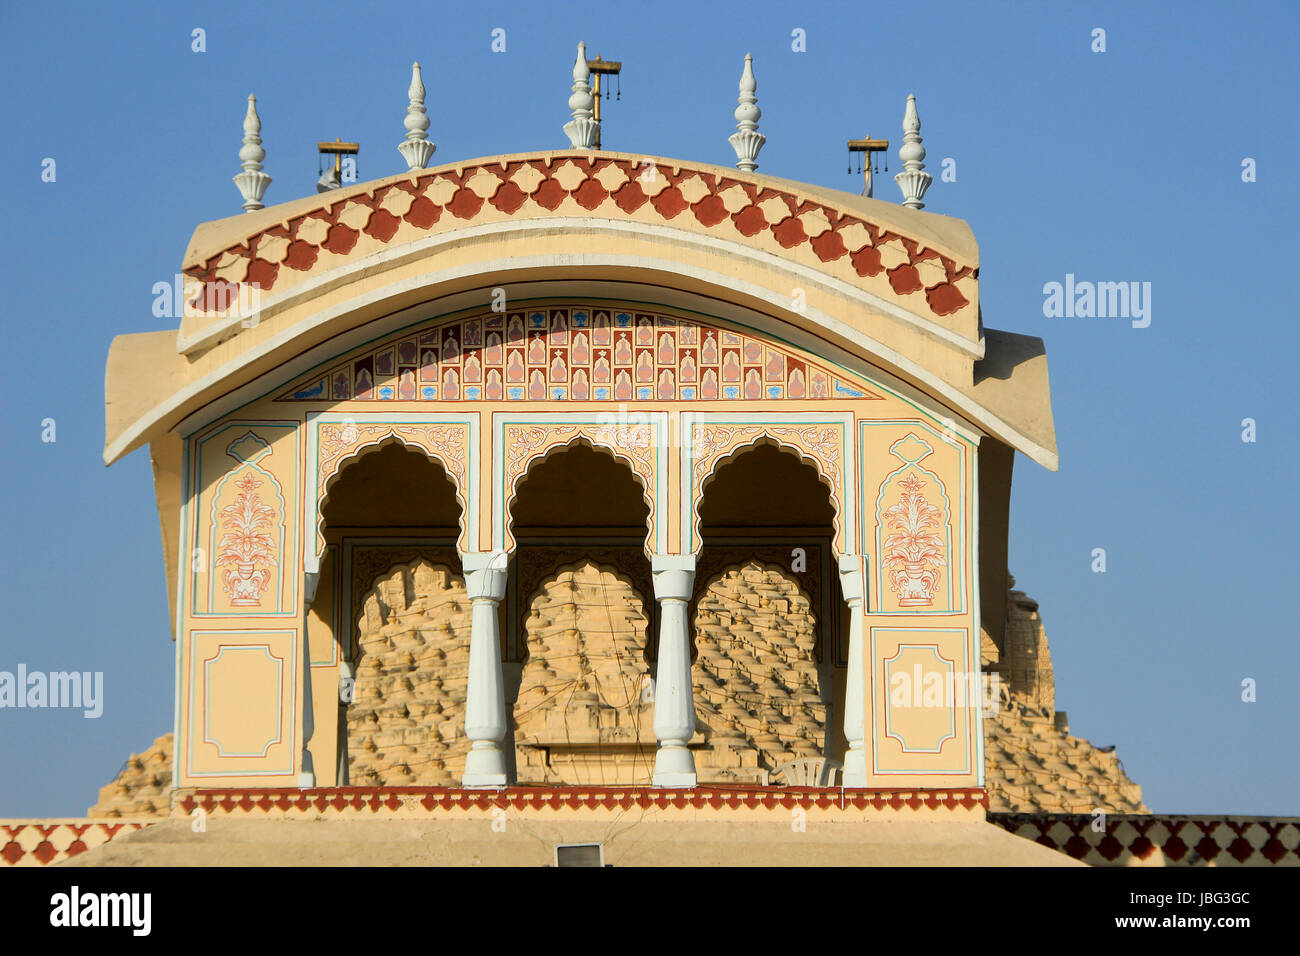 Upper portion of ISKCON Temple at Ahmedabad, Gujarath, India, Asia - Stock Image